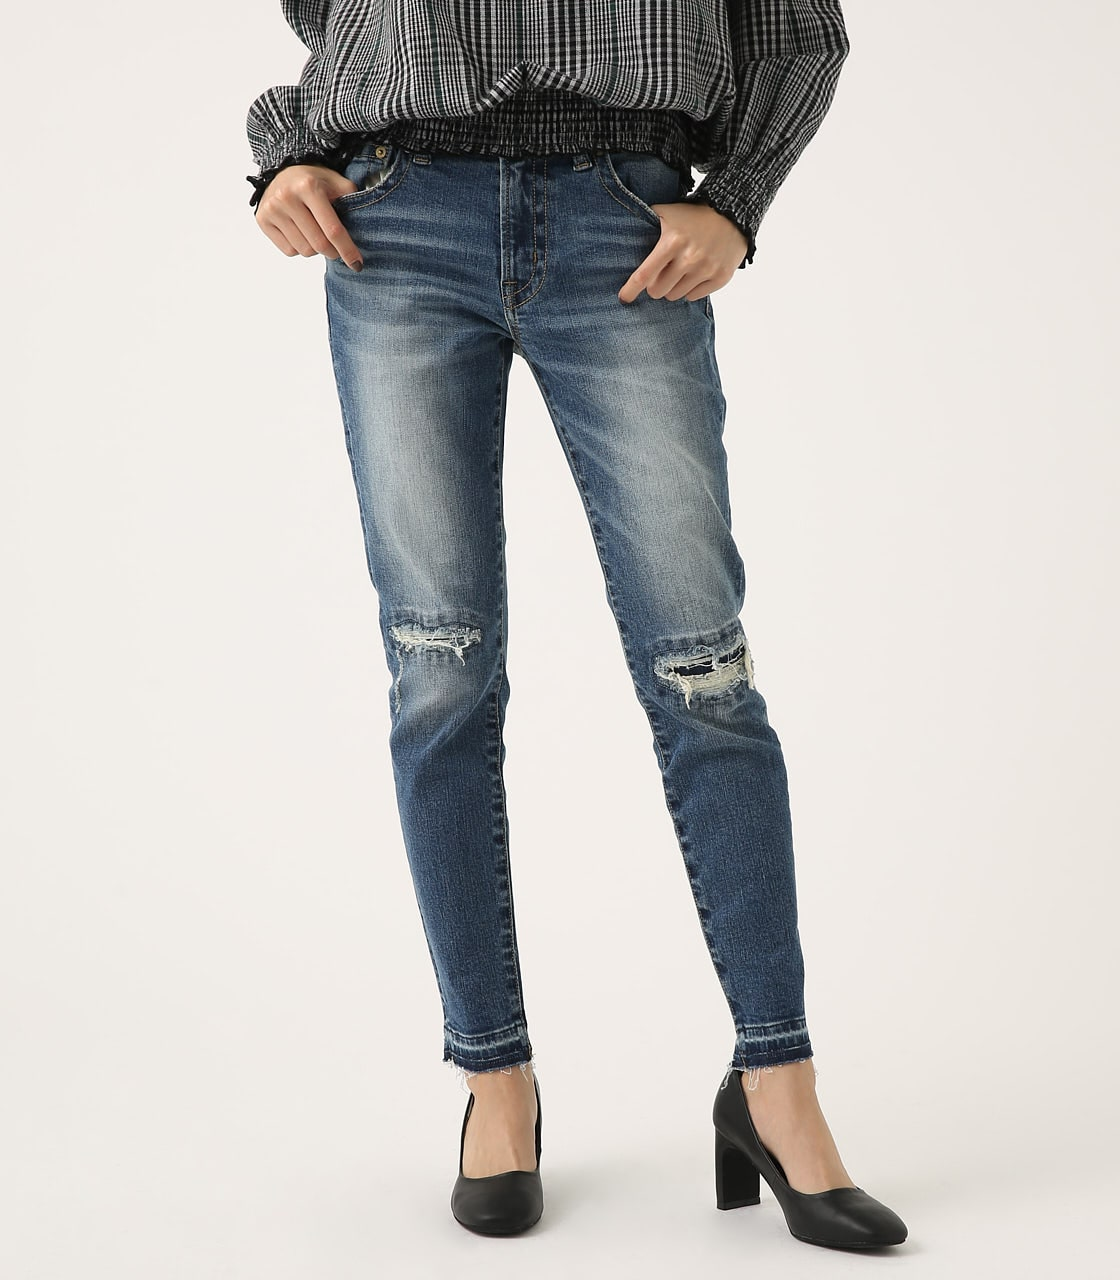 【AZUL BY MOUSSY】REPAIR DENIM SKINNY 詳細画像 BLU 2